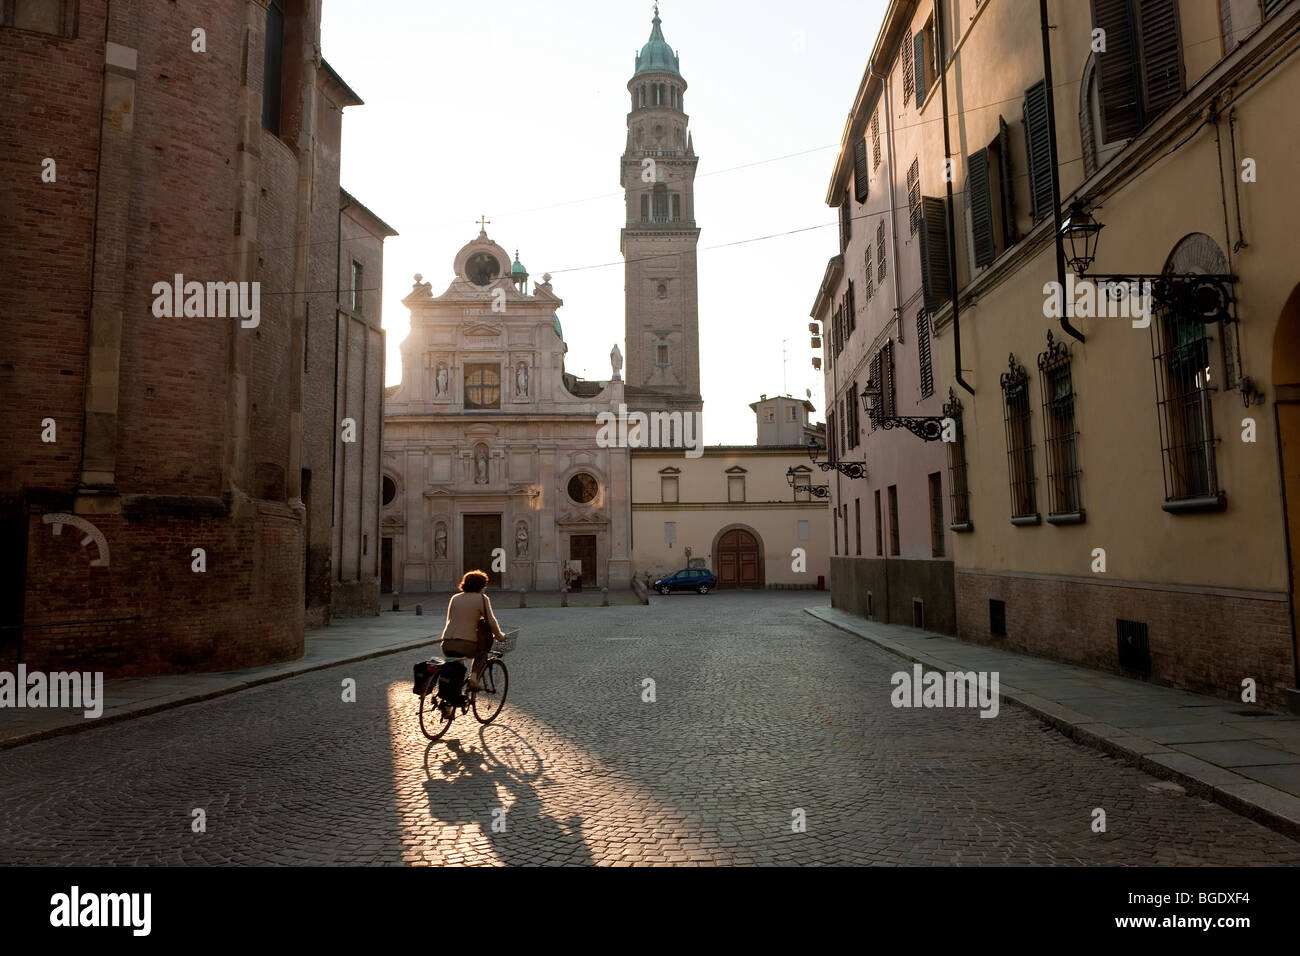 Tower of the Church of Saint John the Evangelist, Duomo (cathedral) on left Parma, Emilia Romagna, Italy - Stock Image